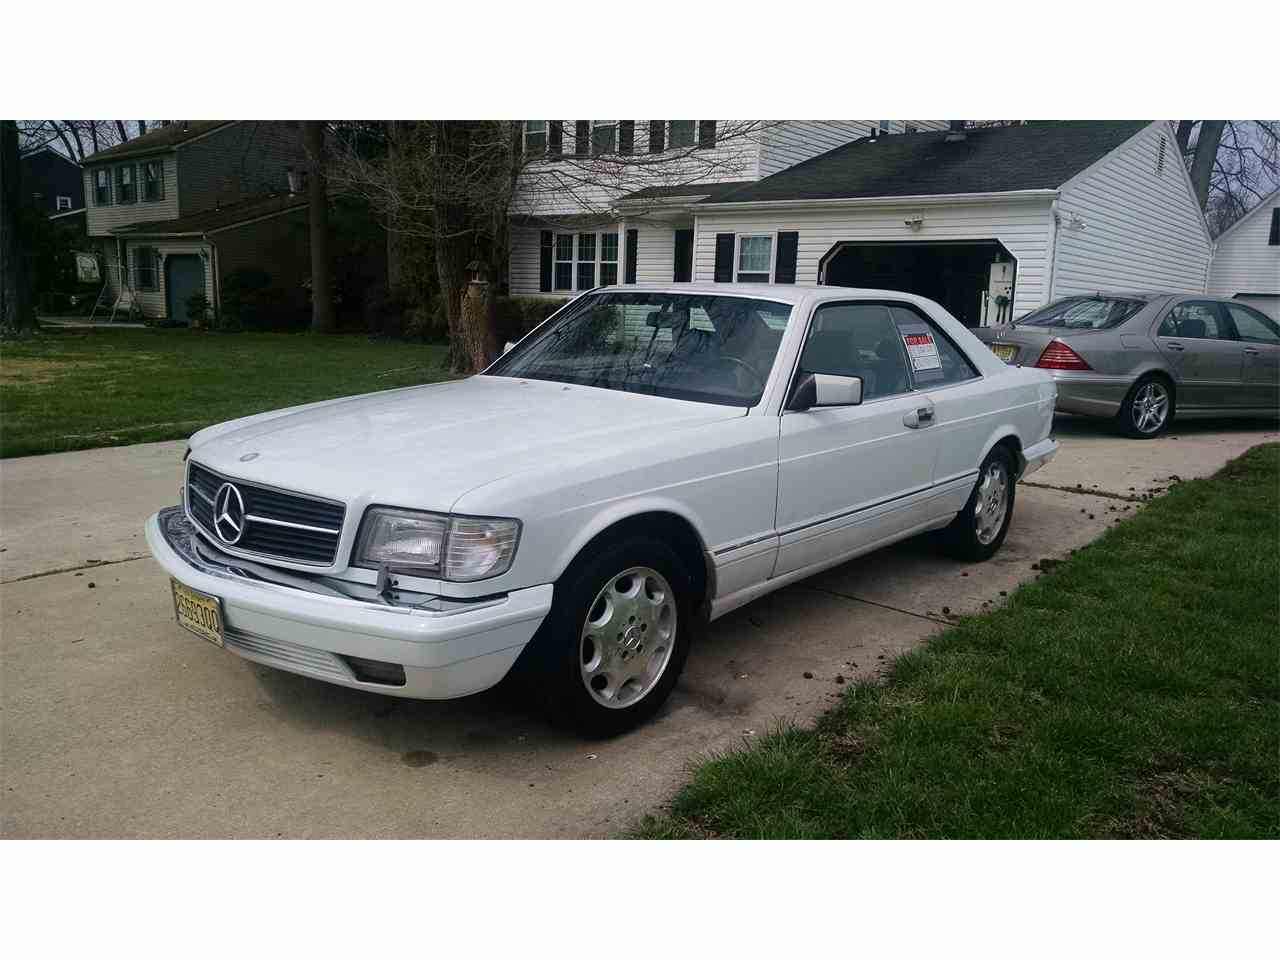 1990 mercedes benz 560sec for sale cc for Mercedes benz 560sec for sale